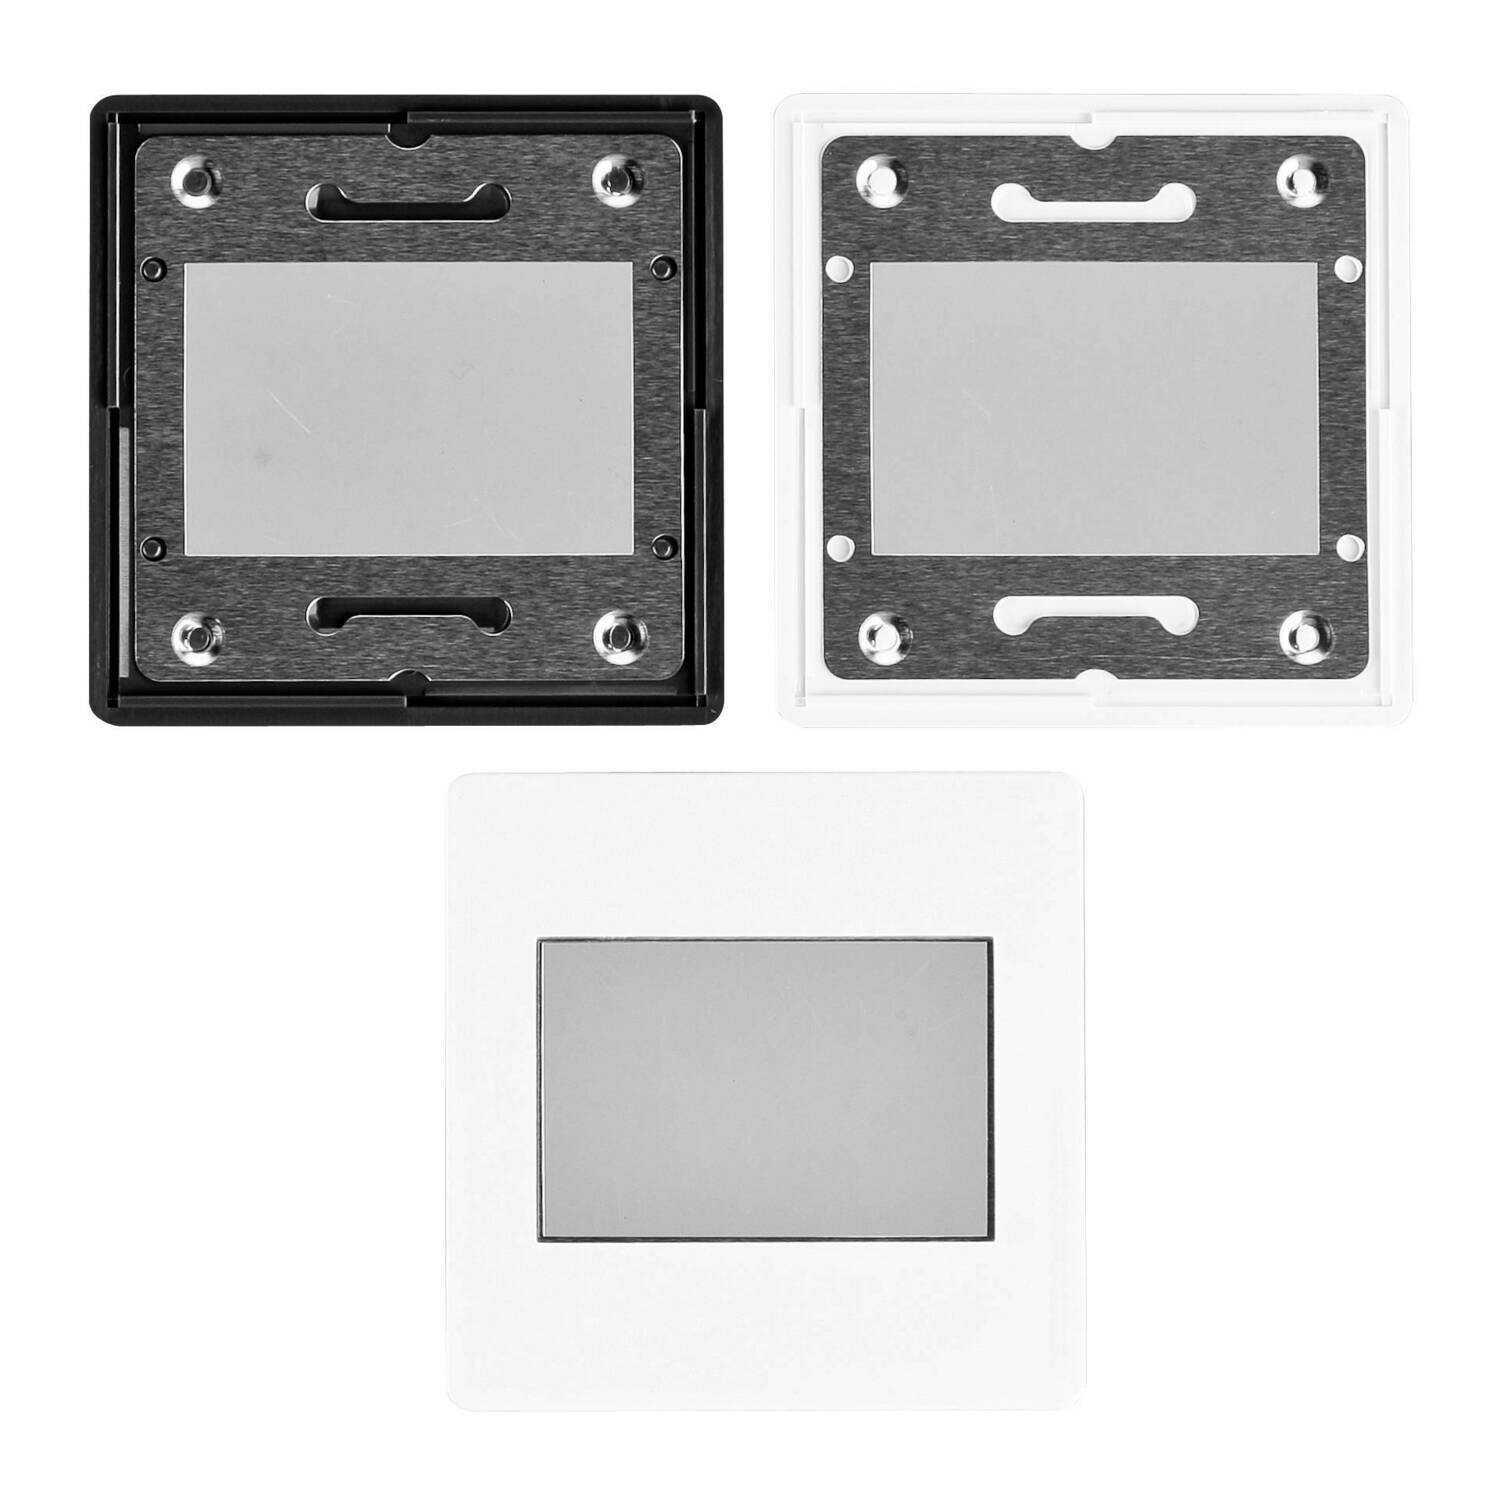 Gepe 24 x 36 with Metal-Mask in both halves for LKM Tray, 2mm, 100pcs/box